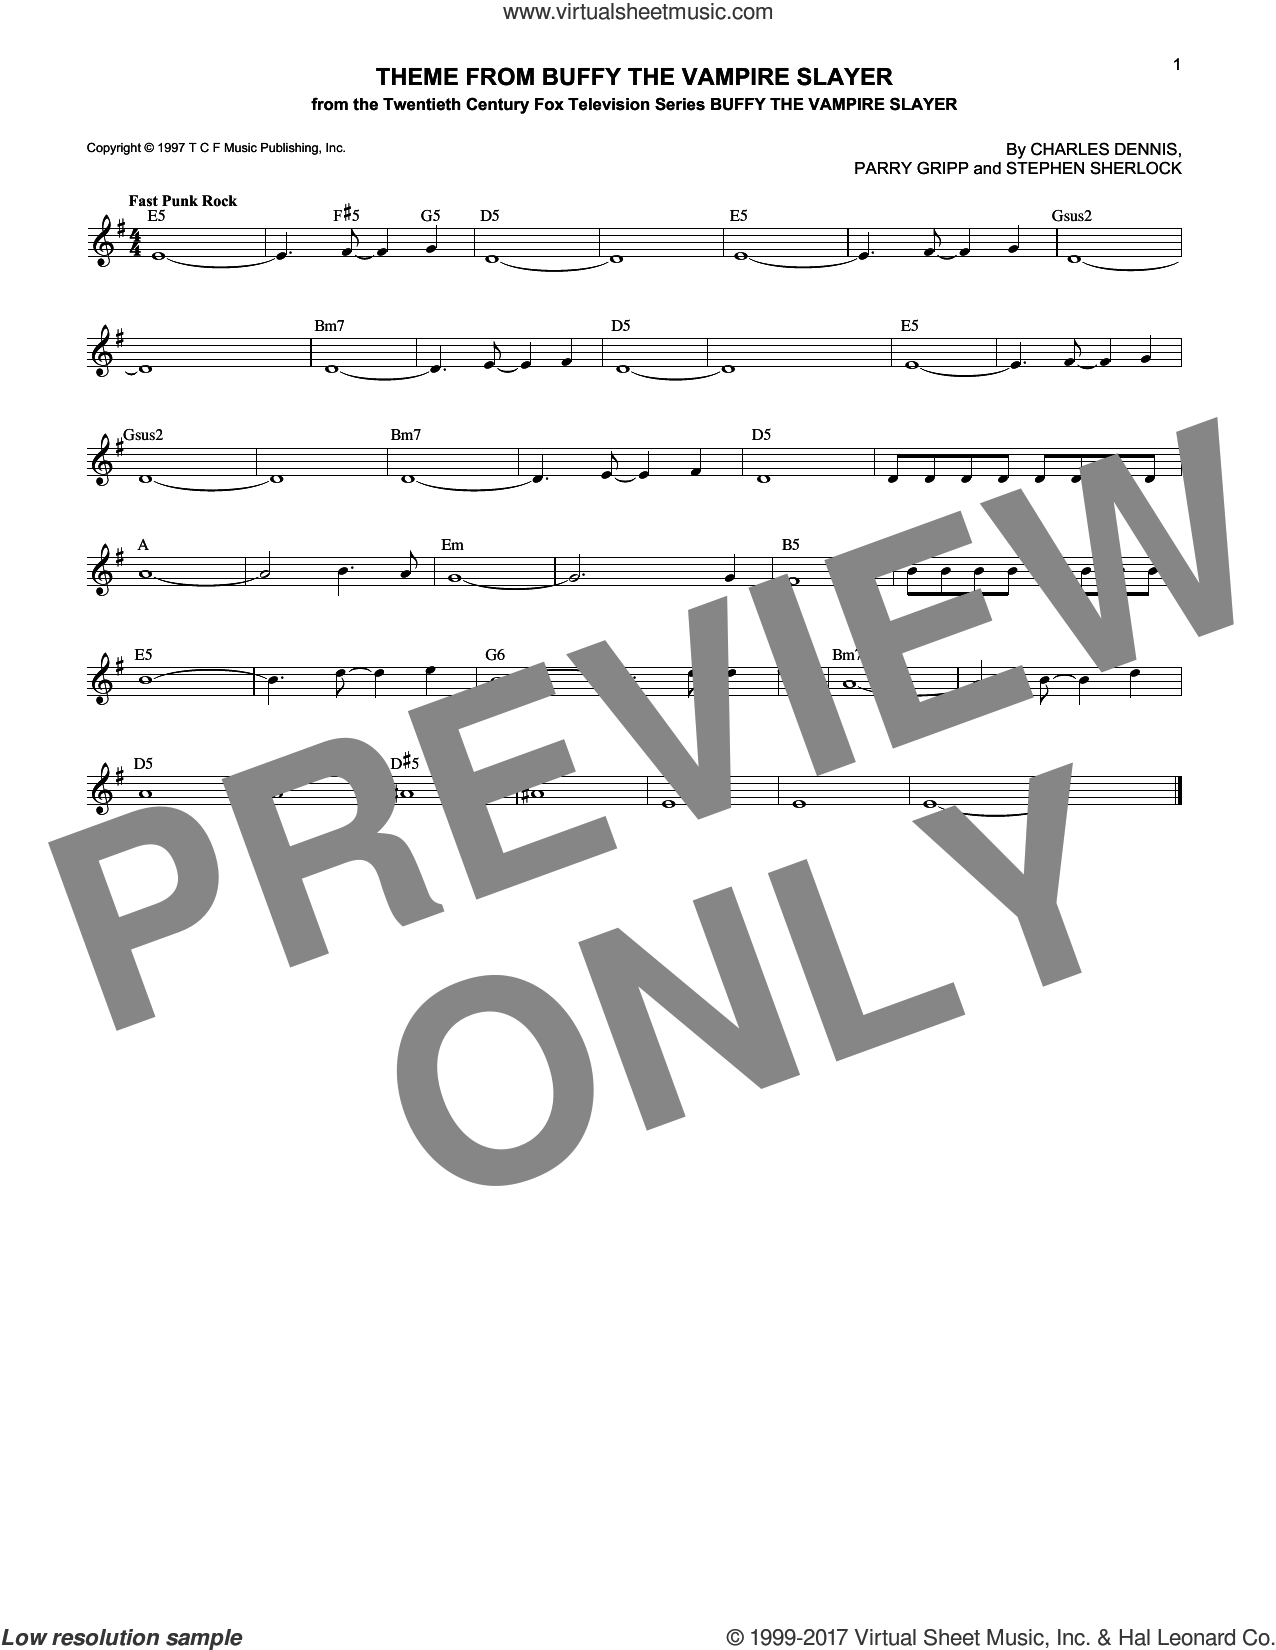 Theme From Buffy The Vampire Slayer sheet music for voice and other instruments (fake book) by Stephen Sherlock, Charles Dennis and Parry Gripp, intermediate skill level